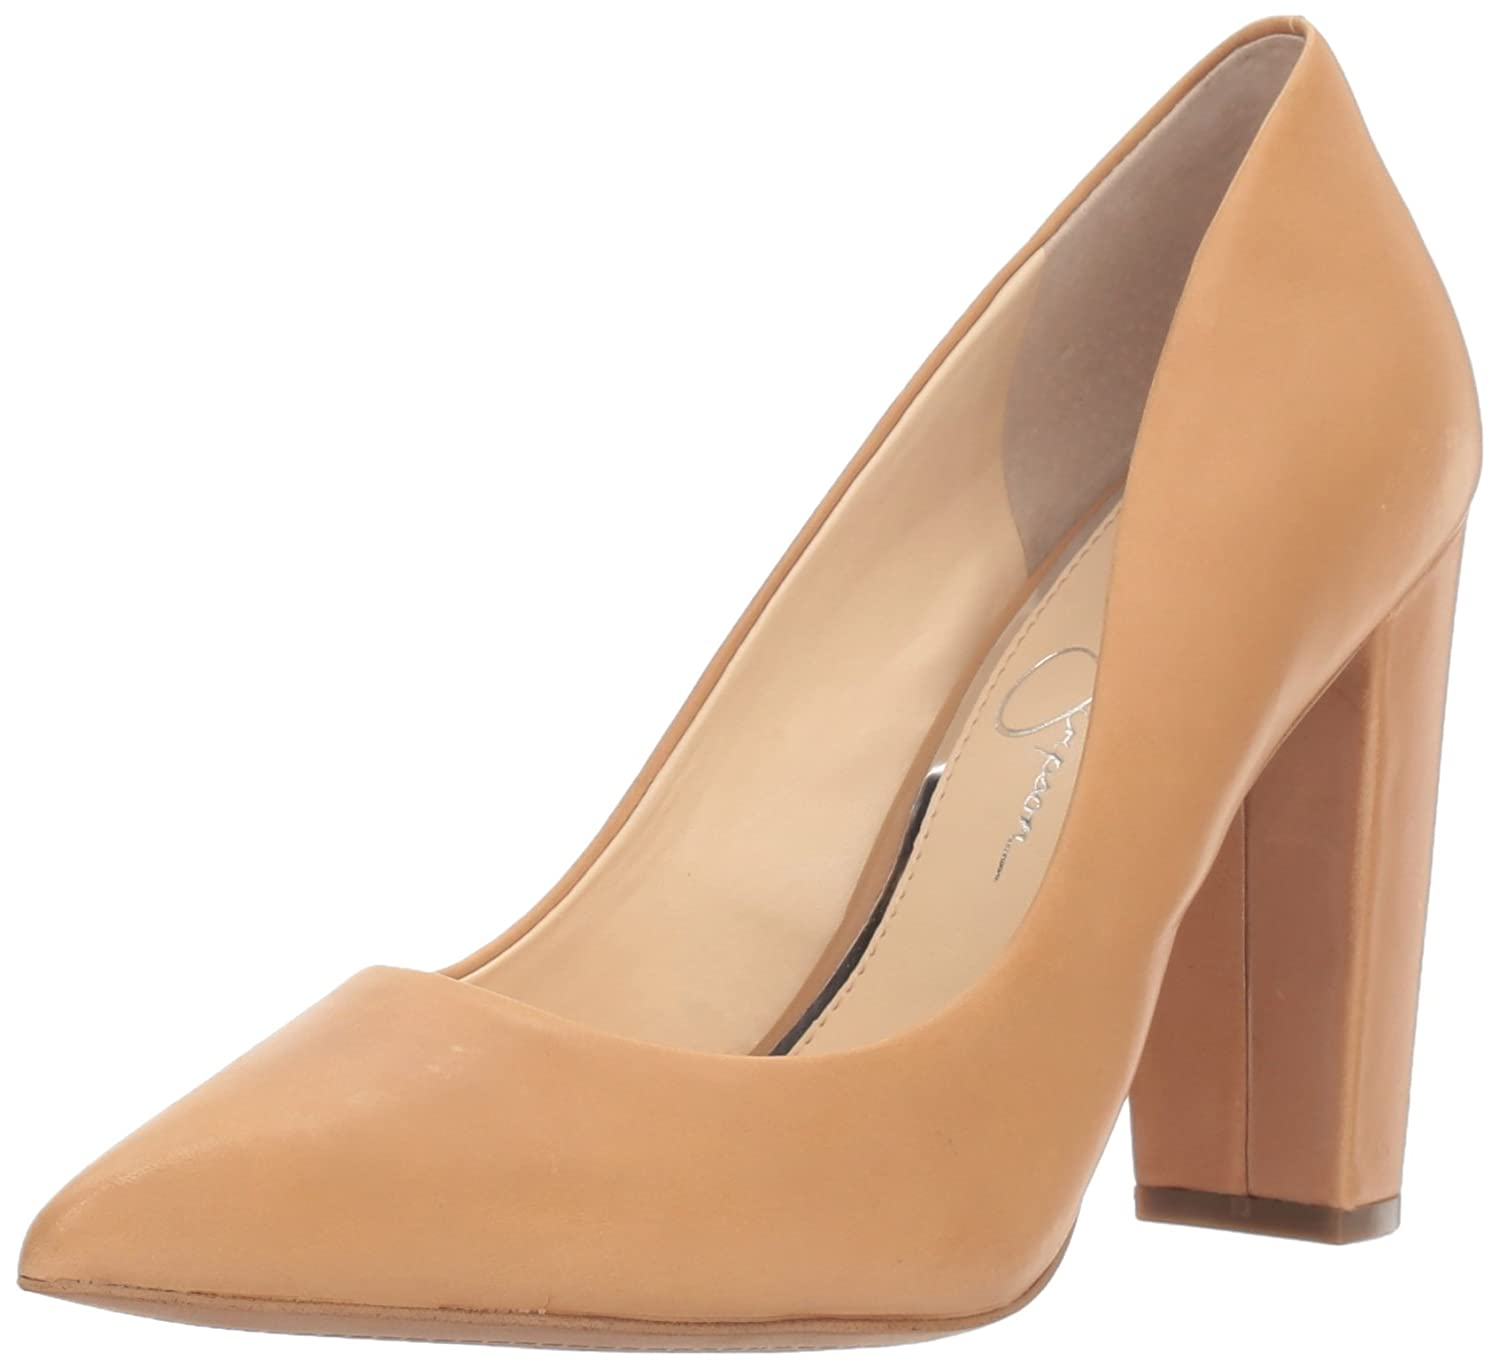 Jessica Simpson Women's Tanysha Dress Pump B01N535GEM 6 B(M) US|Buff